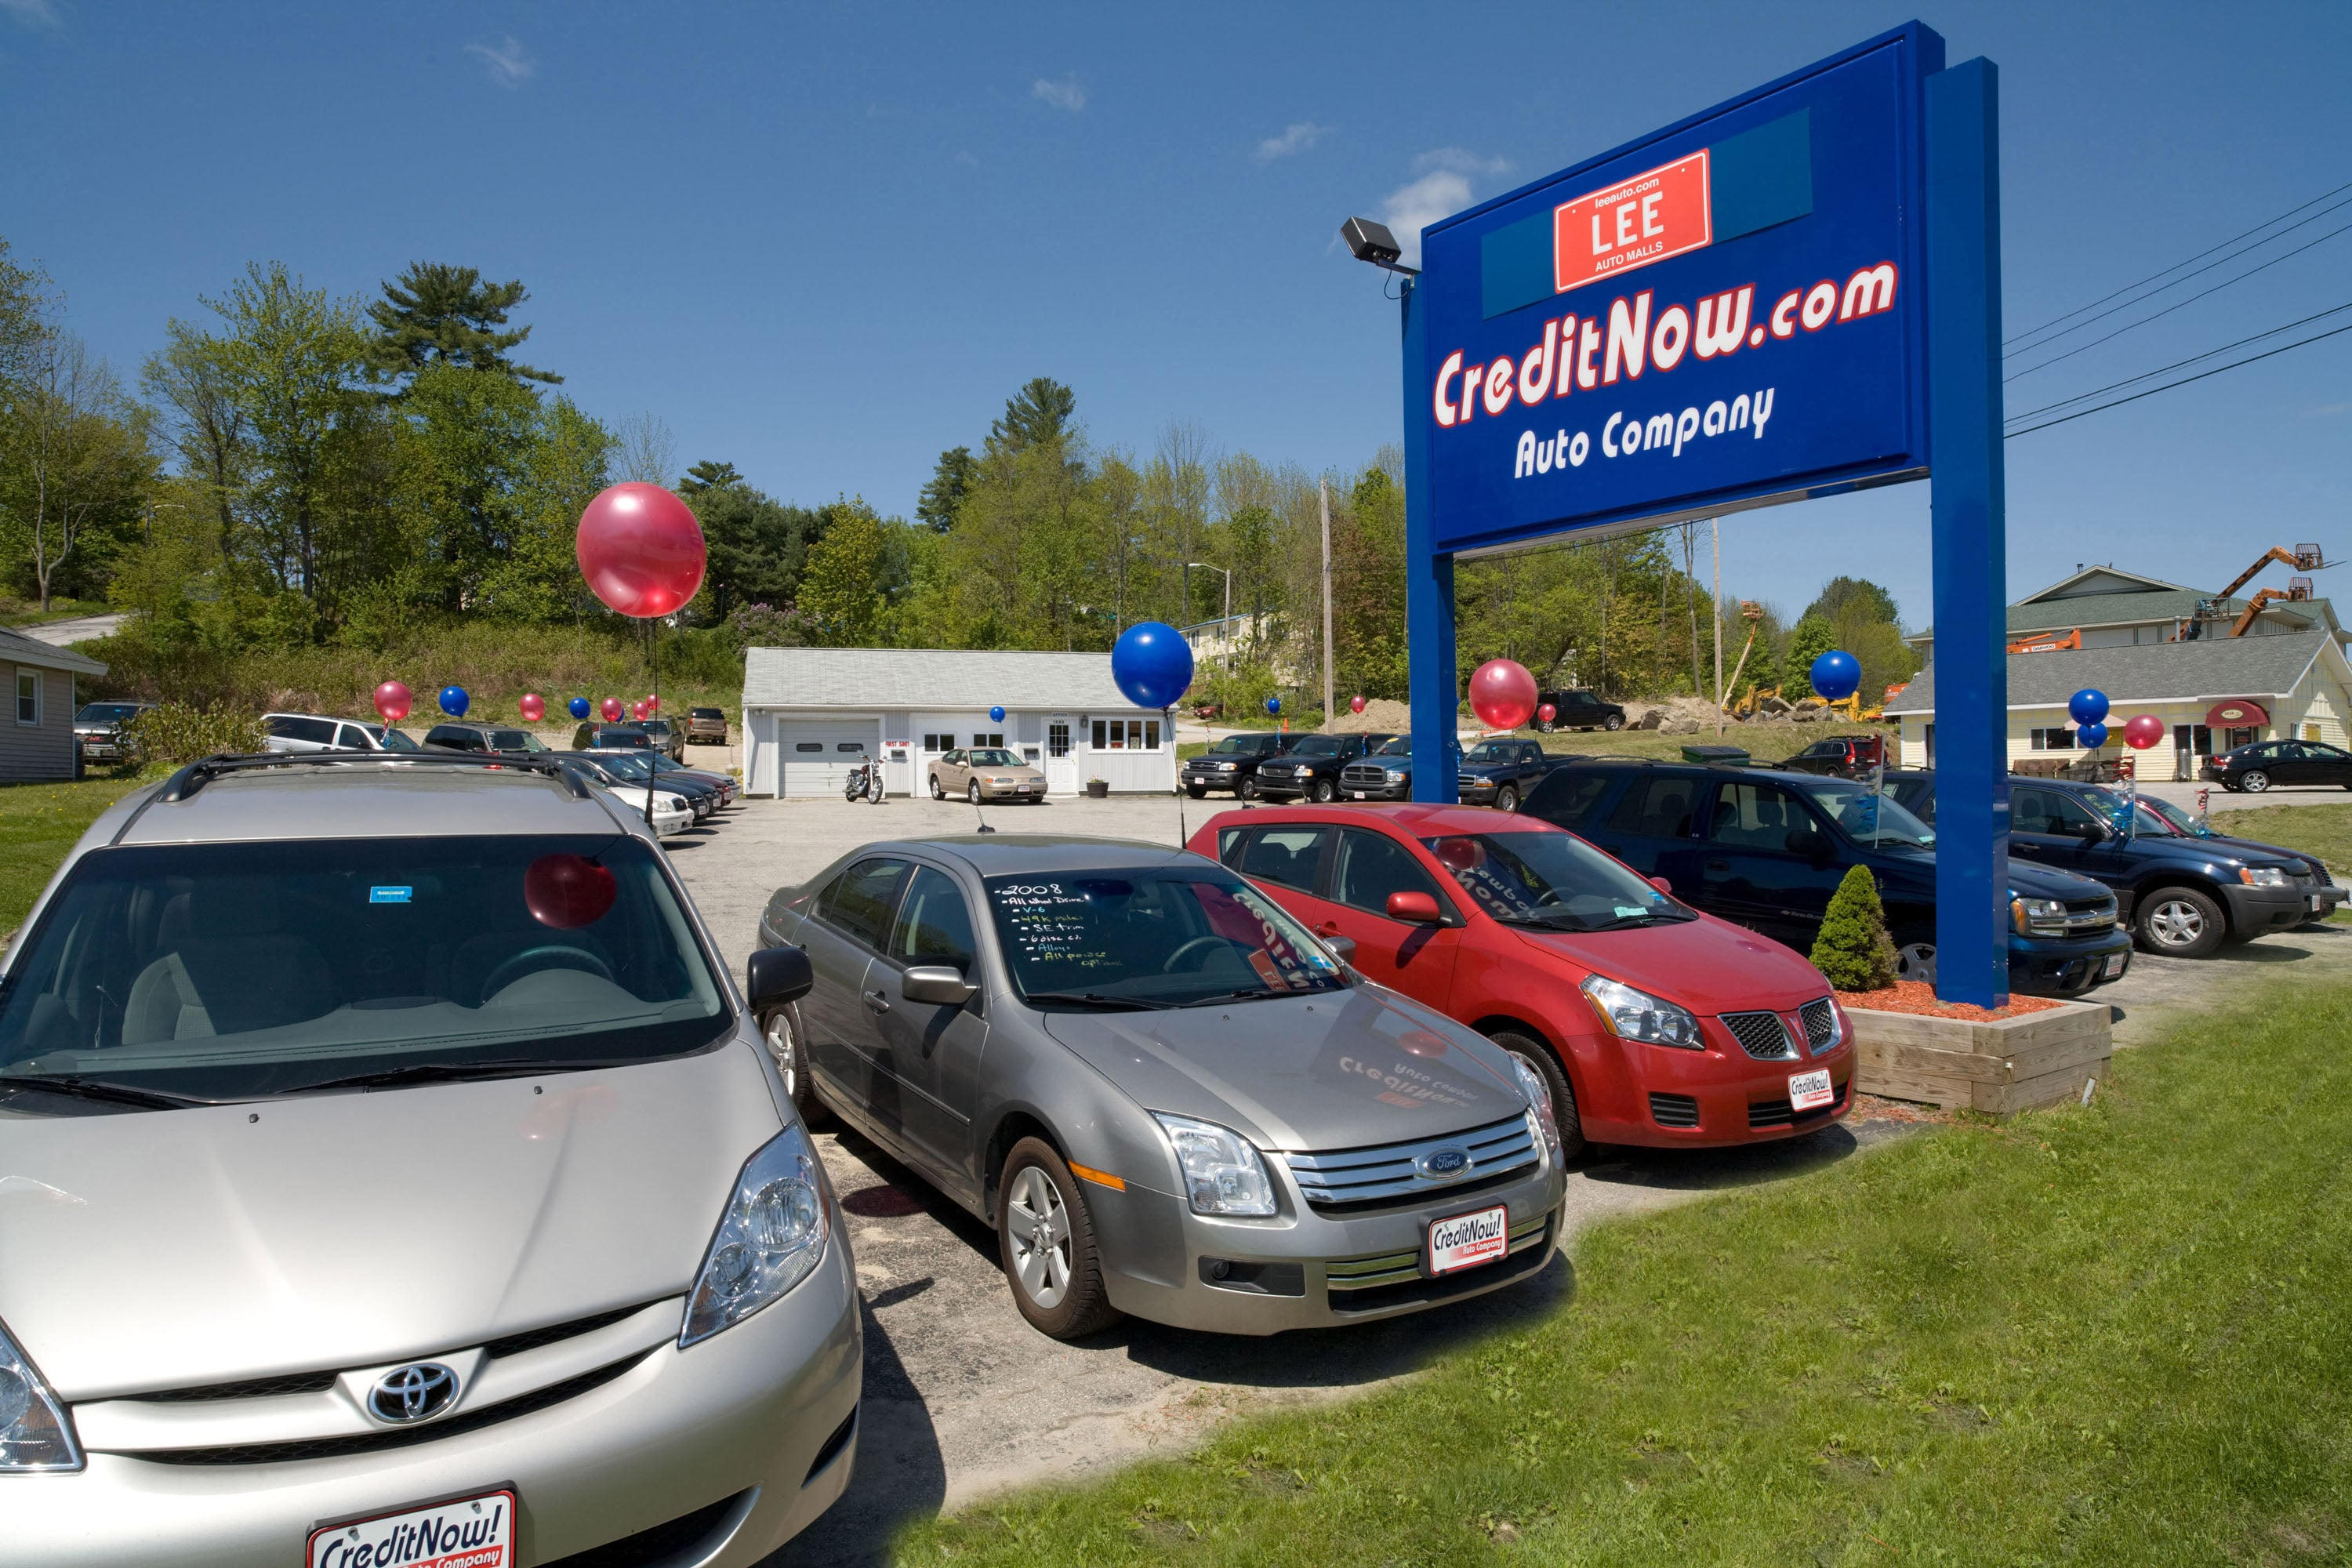 Auburn Maine Used Cars Lee Credit Now